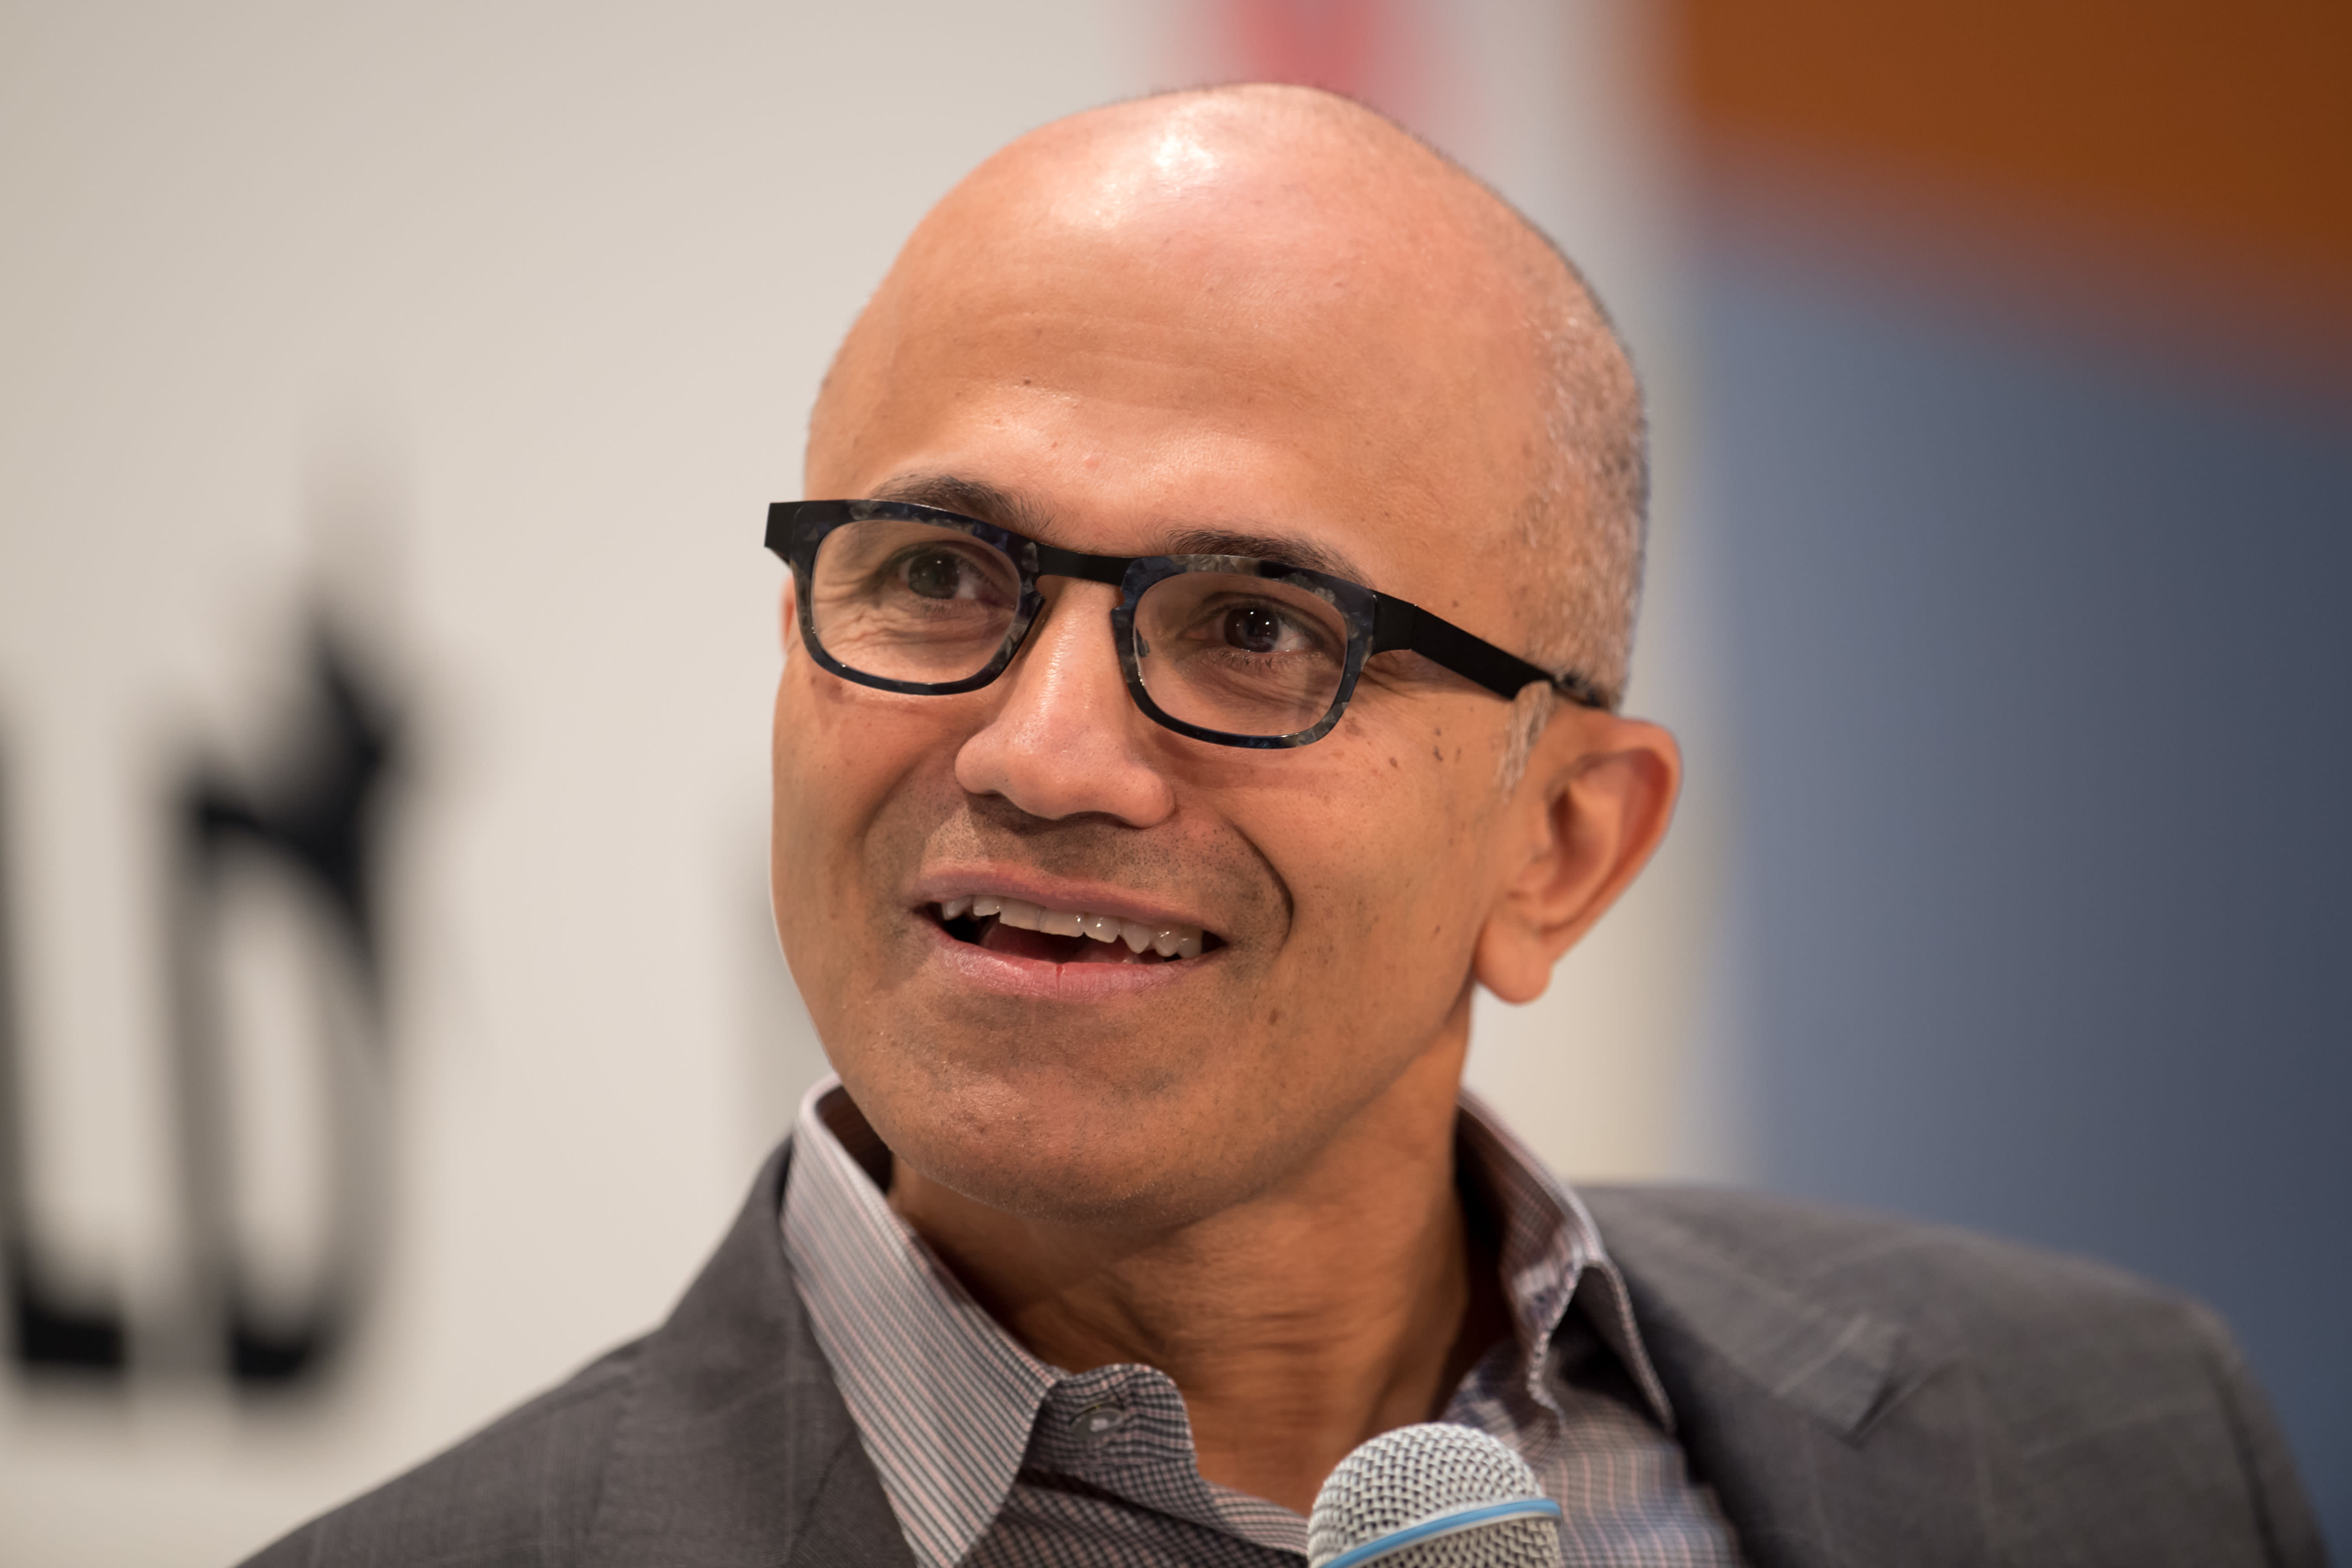 Microsoft snags hotly contested $10 billion defense contract, beating out Amazon